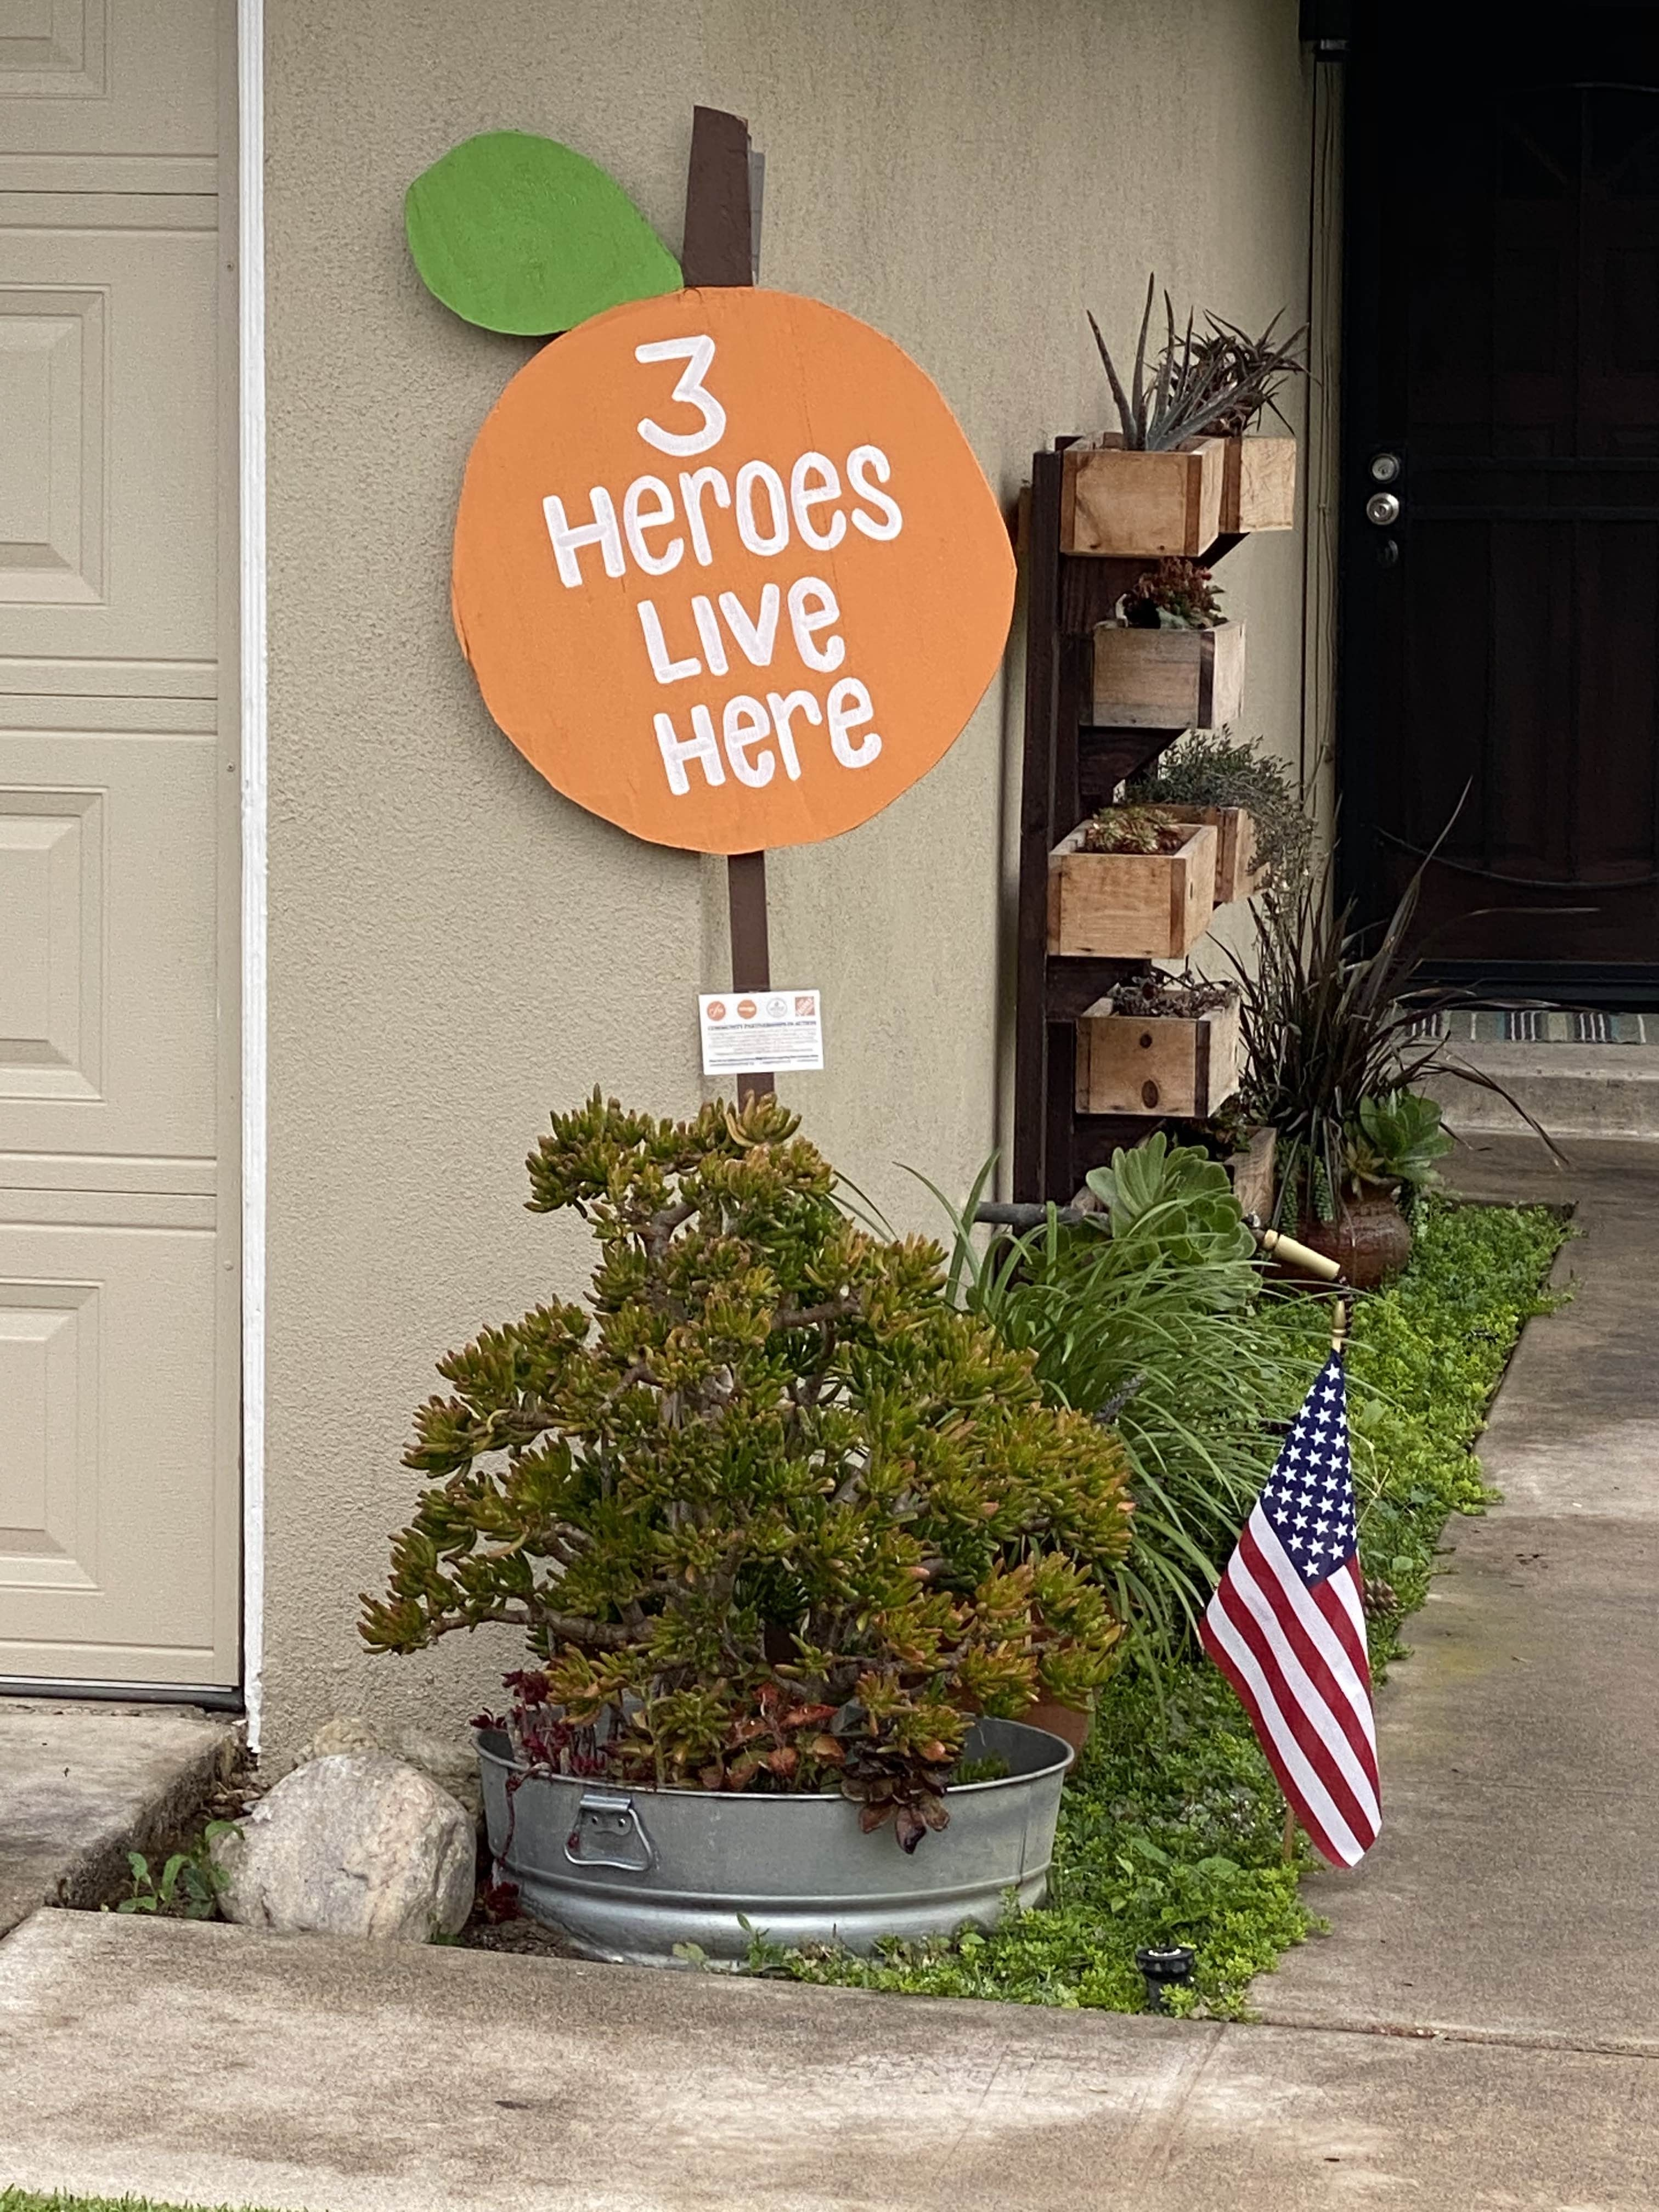 """Picture of  sign in the shape of an Orange with white text that says """"3 Heroes Live Here""""."""